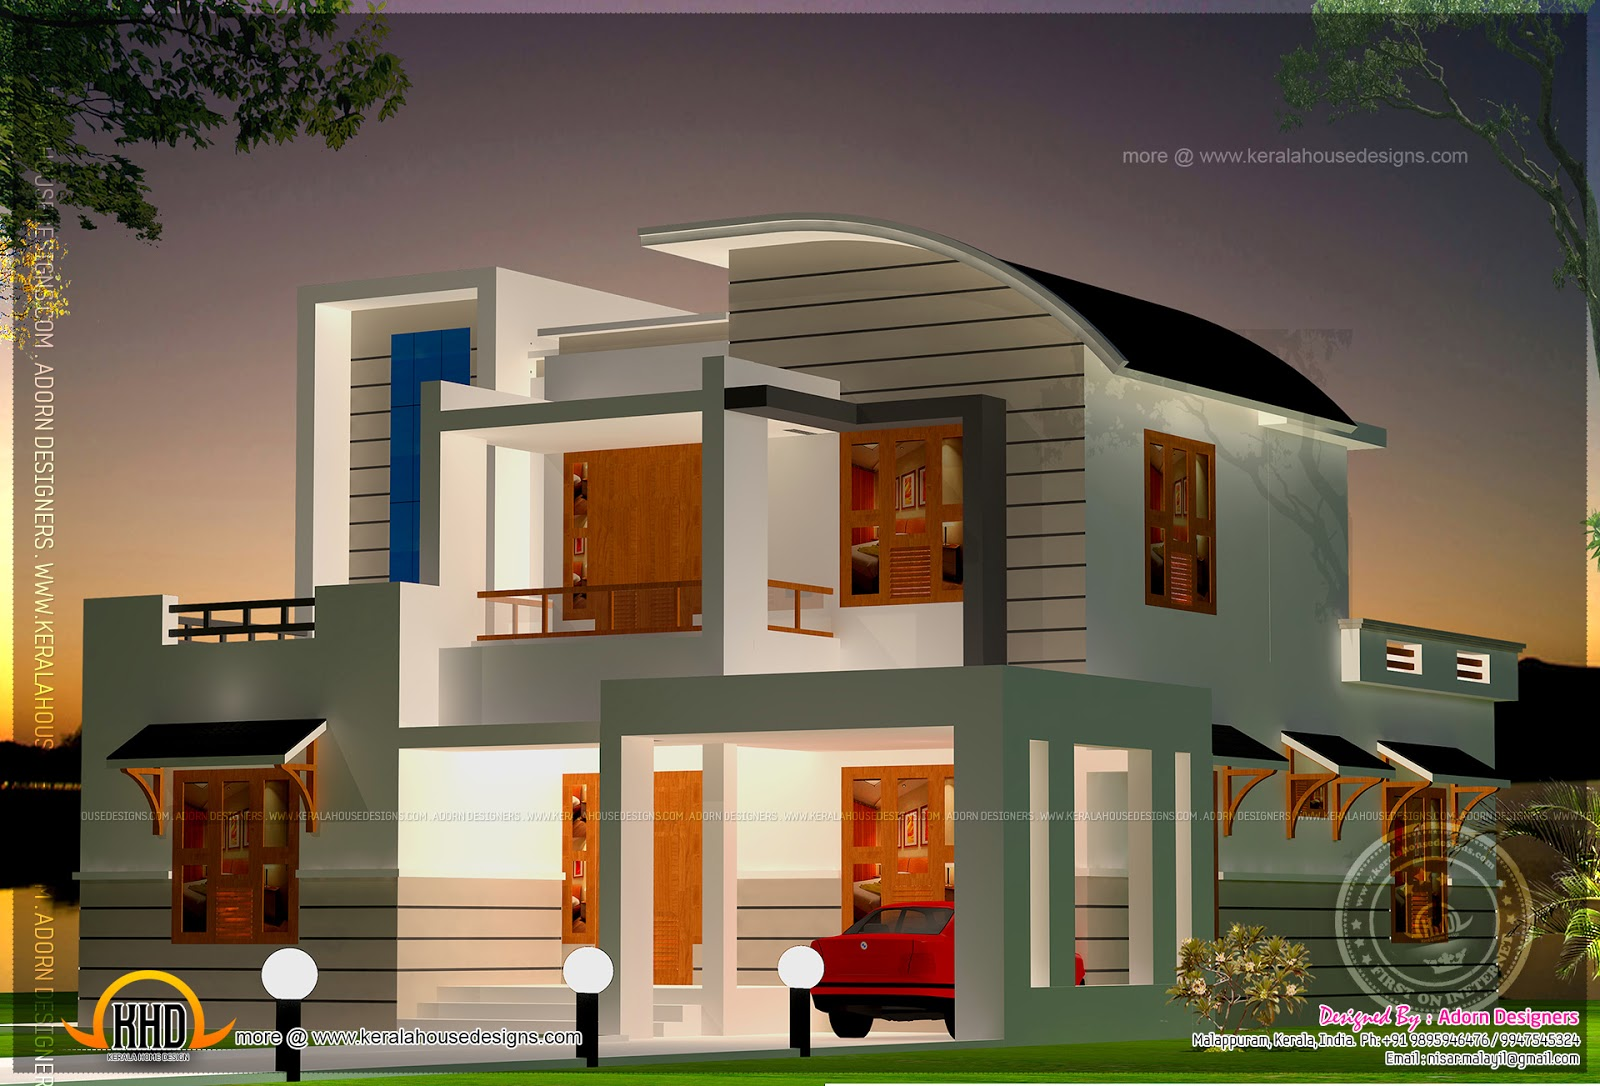 Design style modern mix modern mix house